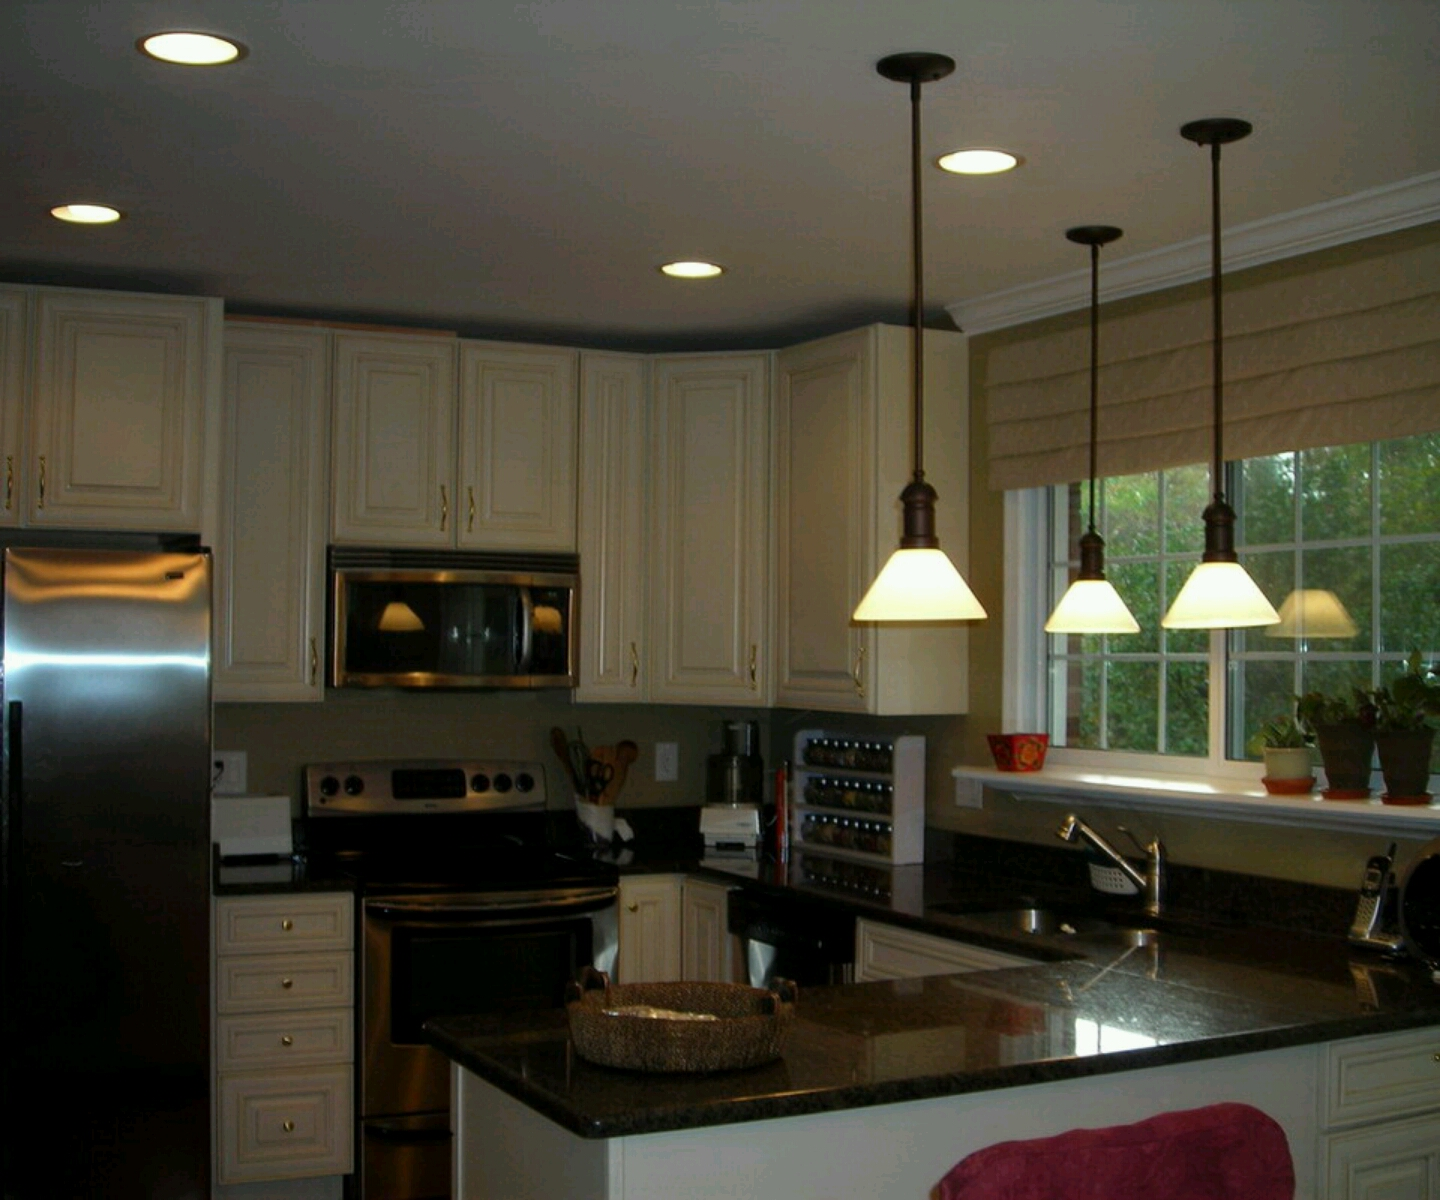 New home designs latest modern home kitchen cabinet designs ideas Kitchen design for modern house